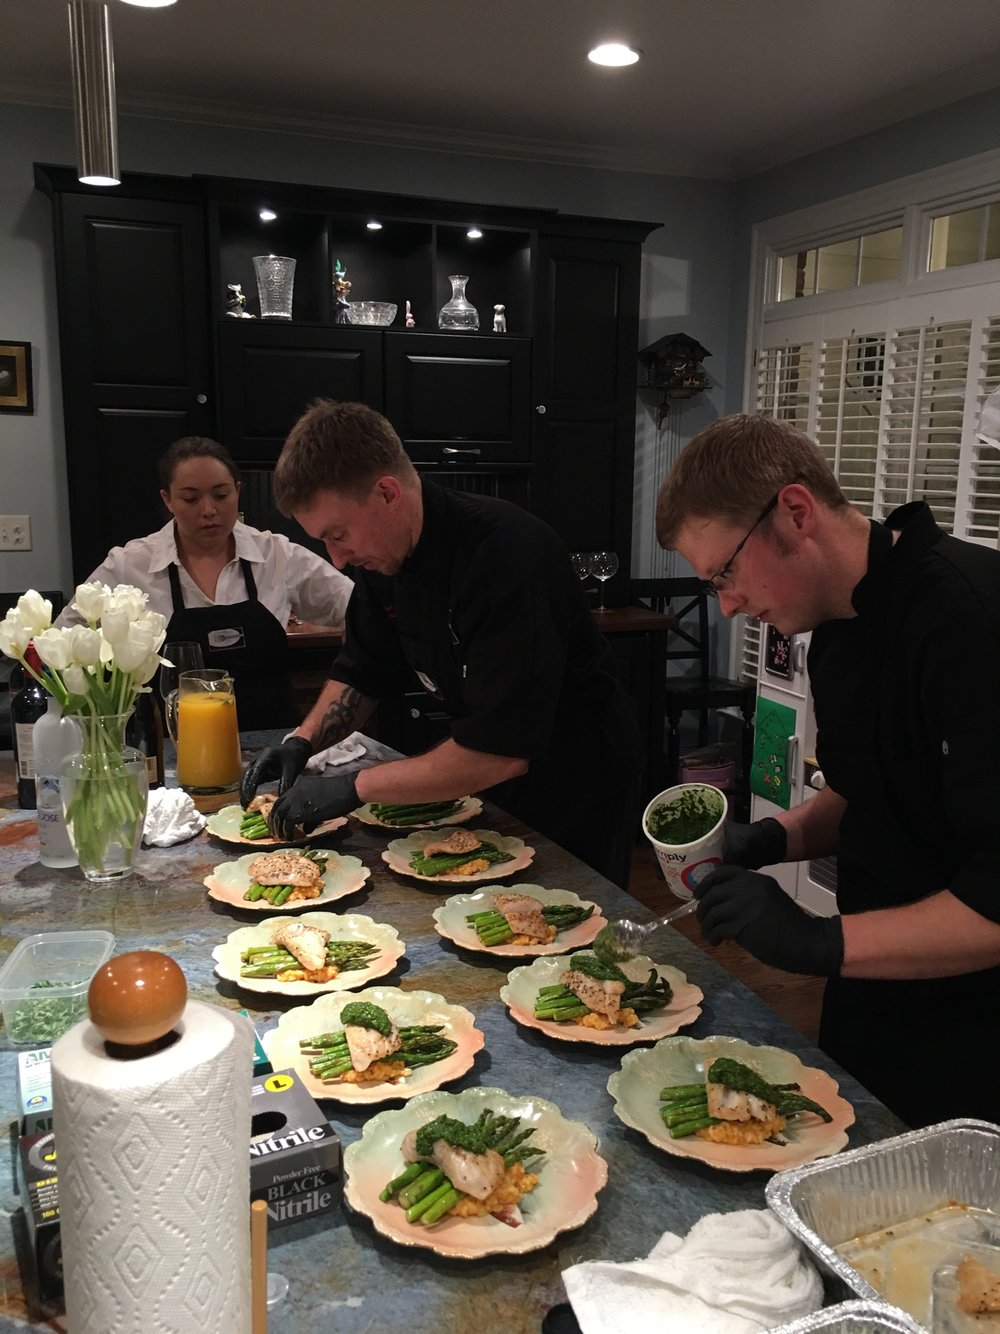 Chef Mike & team prepping for a private event